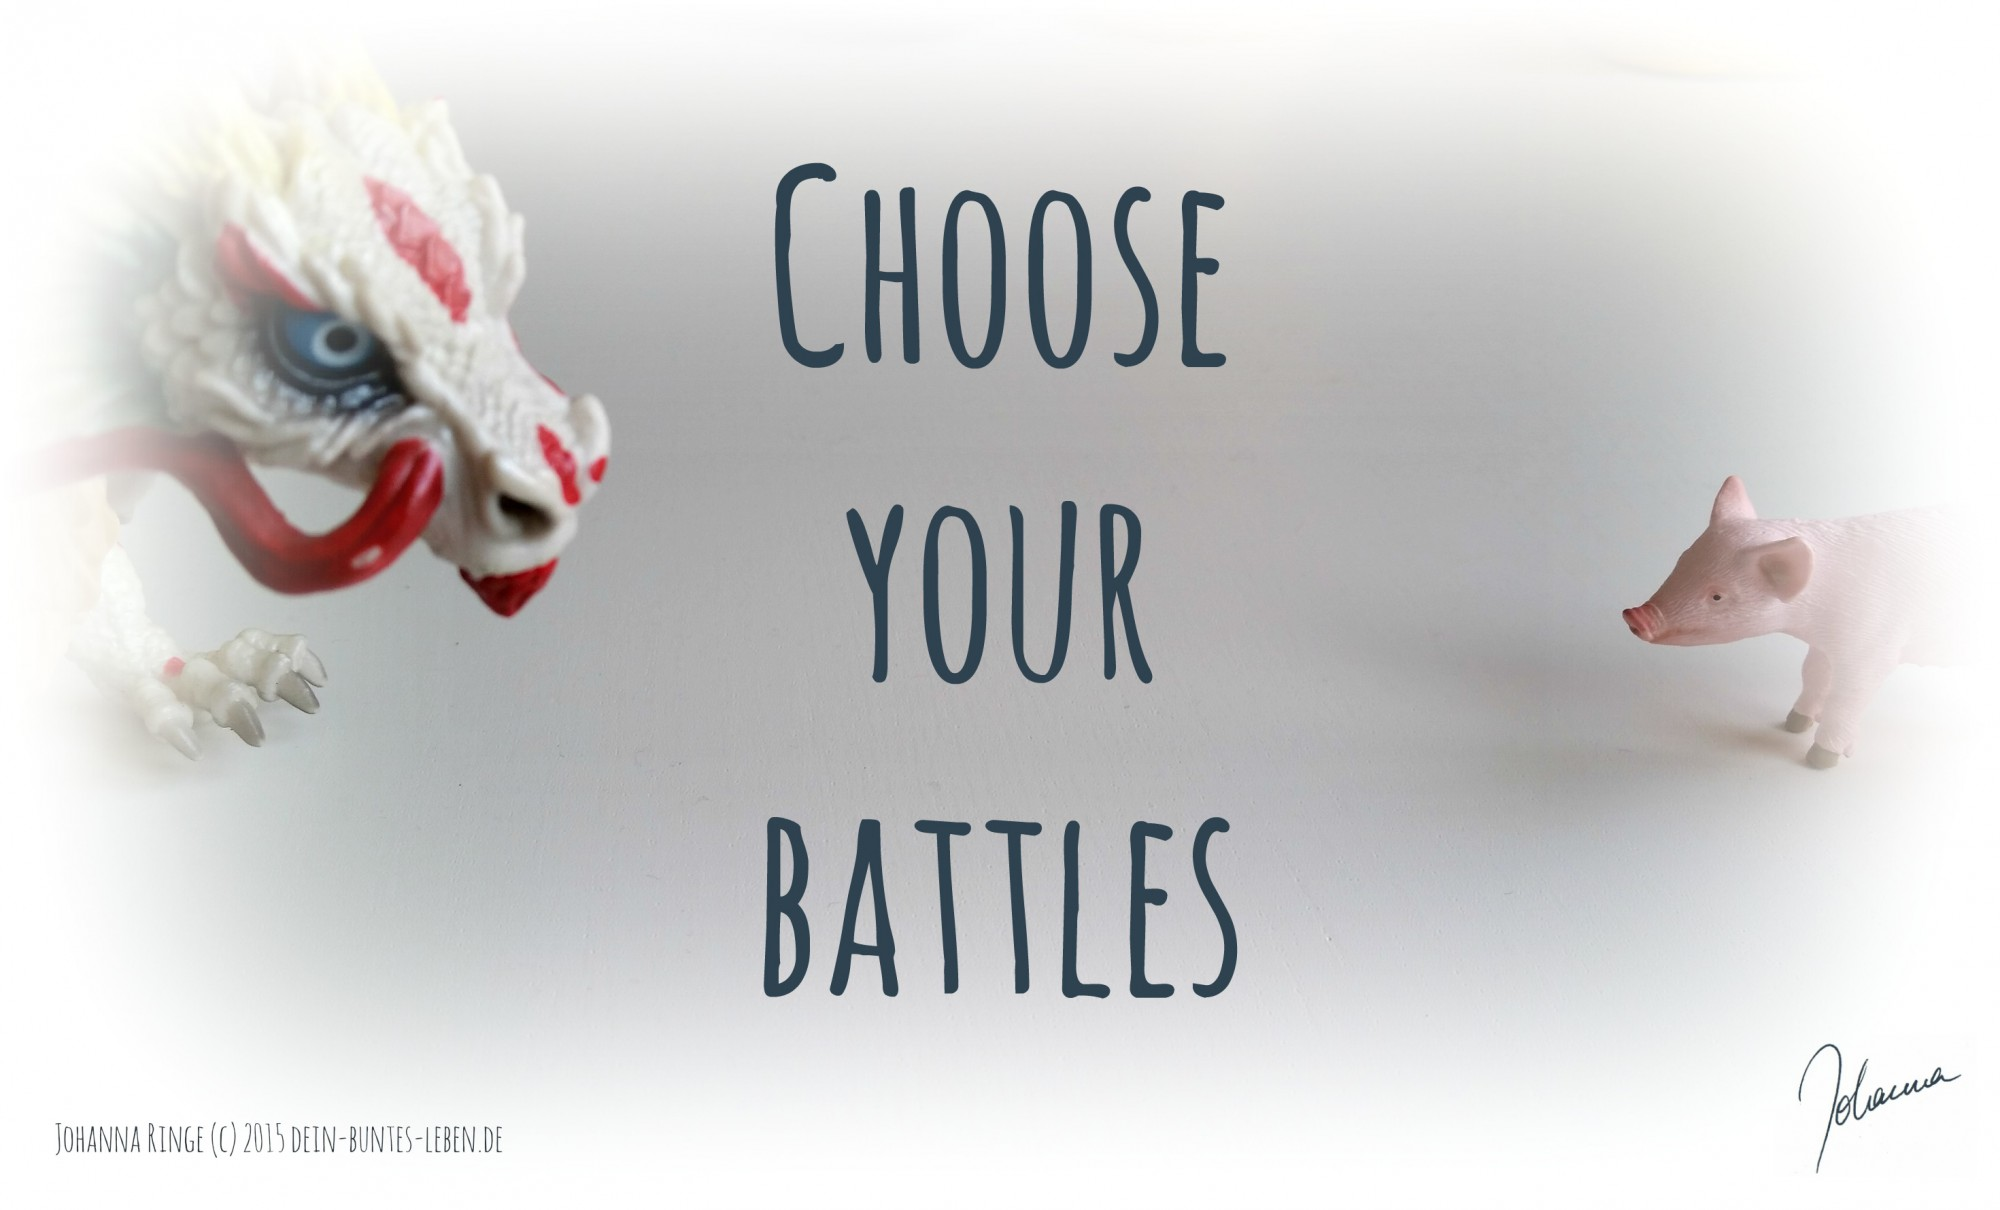 Choose your battles (c)2015 Johanna Ringe